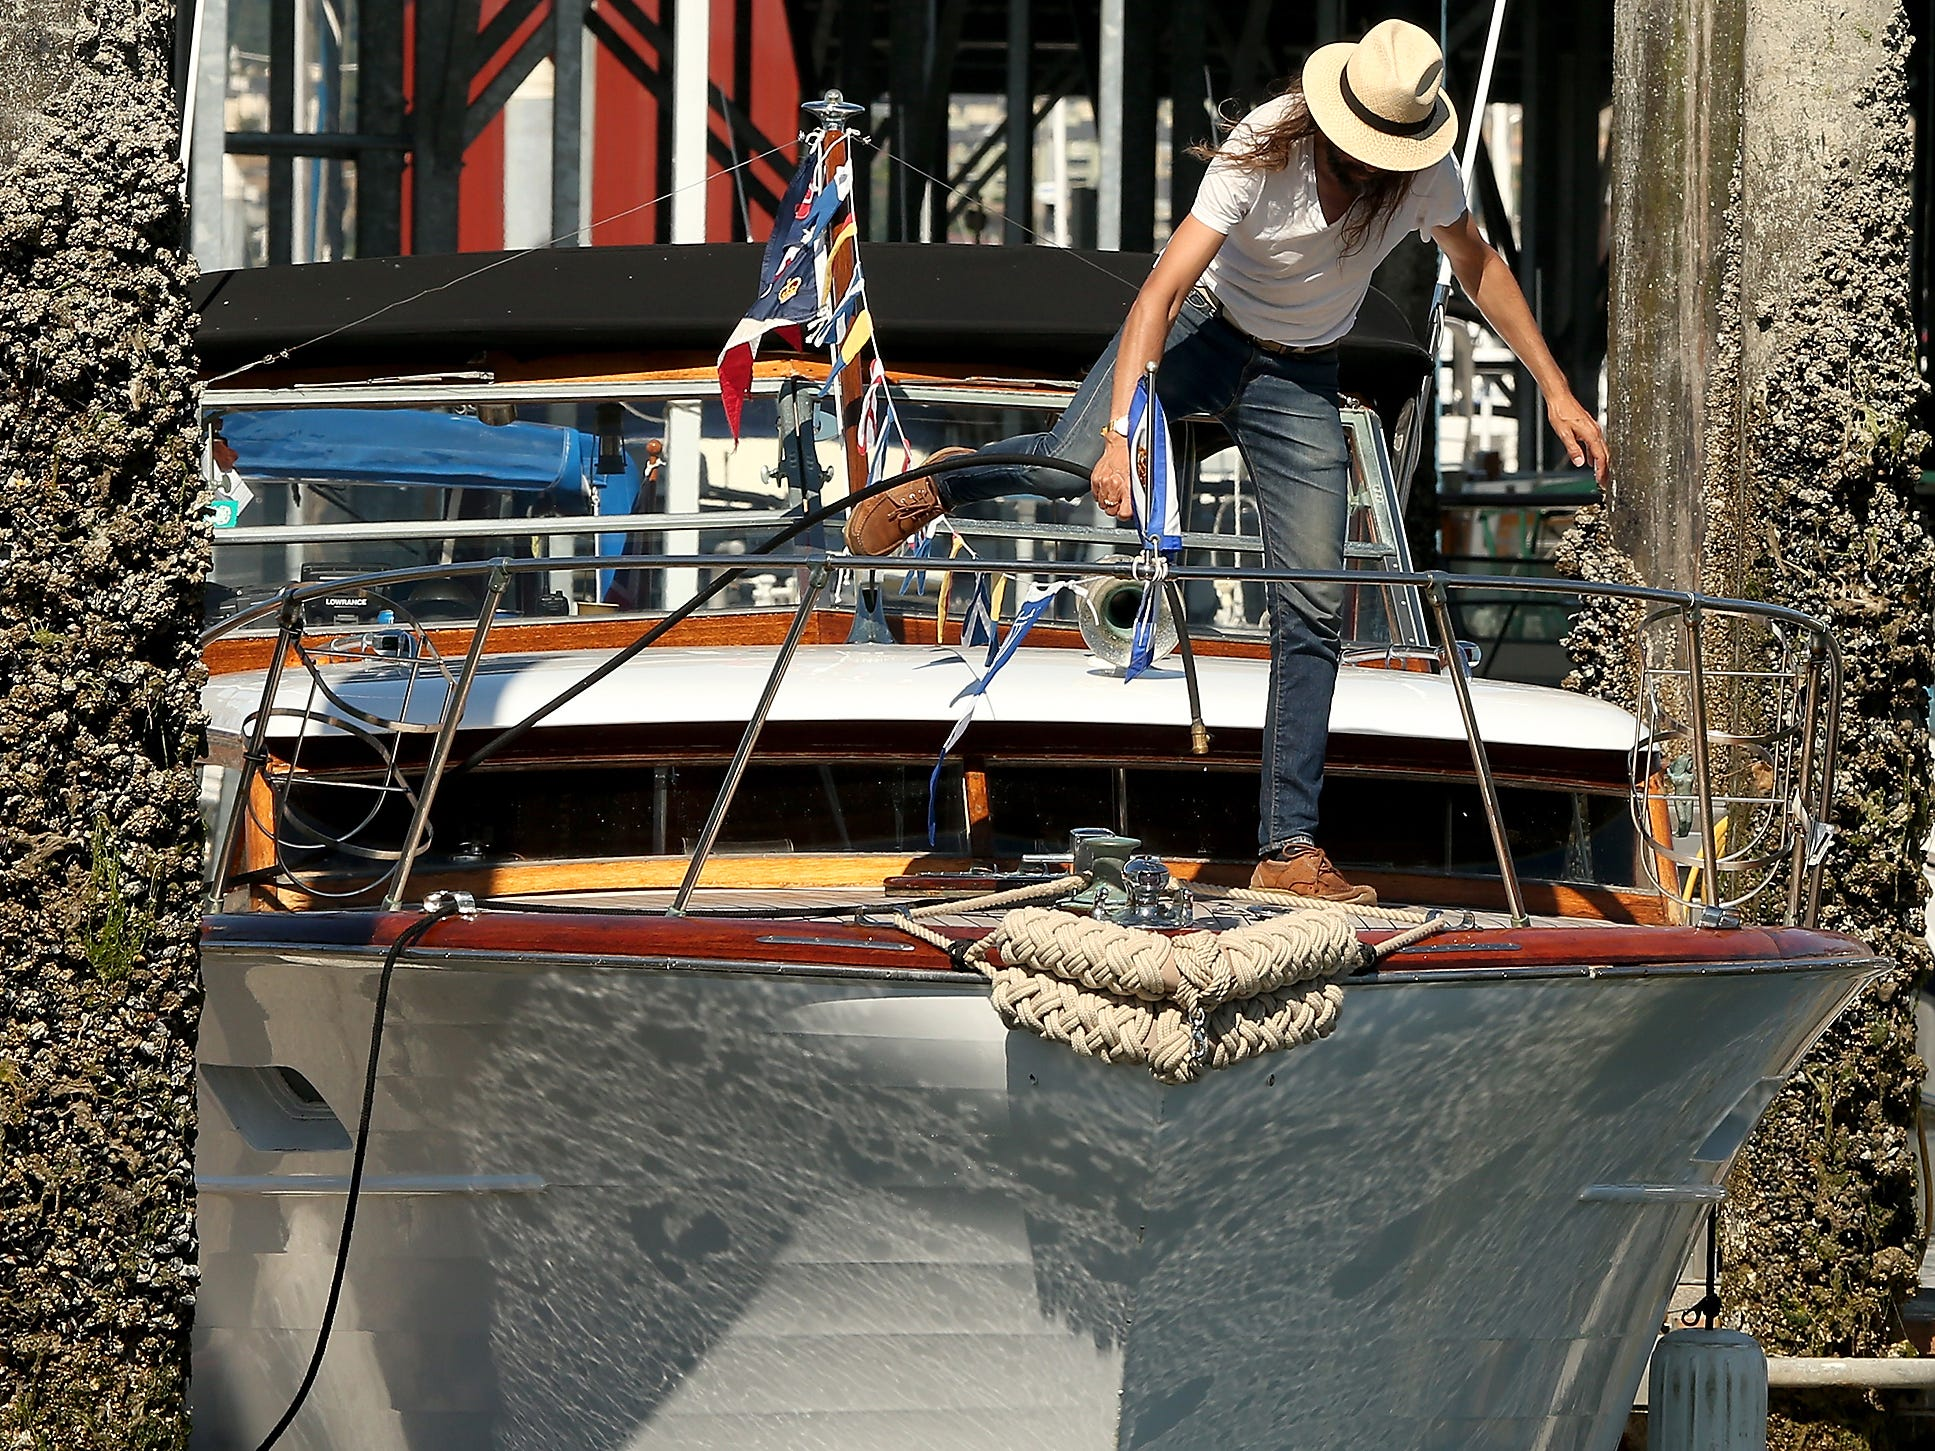 Maurizio Hublitz, of Vancouver BC,  steps over the flags strung across his  1959 32' Express 32 Chris-Craft named Bianca as he fills the water tank during the Chris-Craft Rendezvous at the Port Orchard Marina on Friday, July 13, 2018.